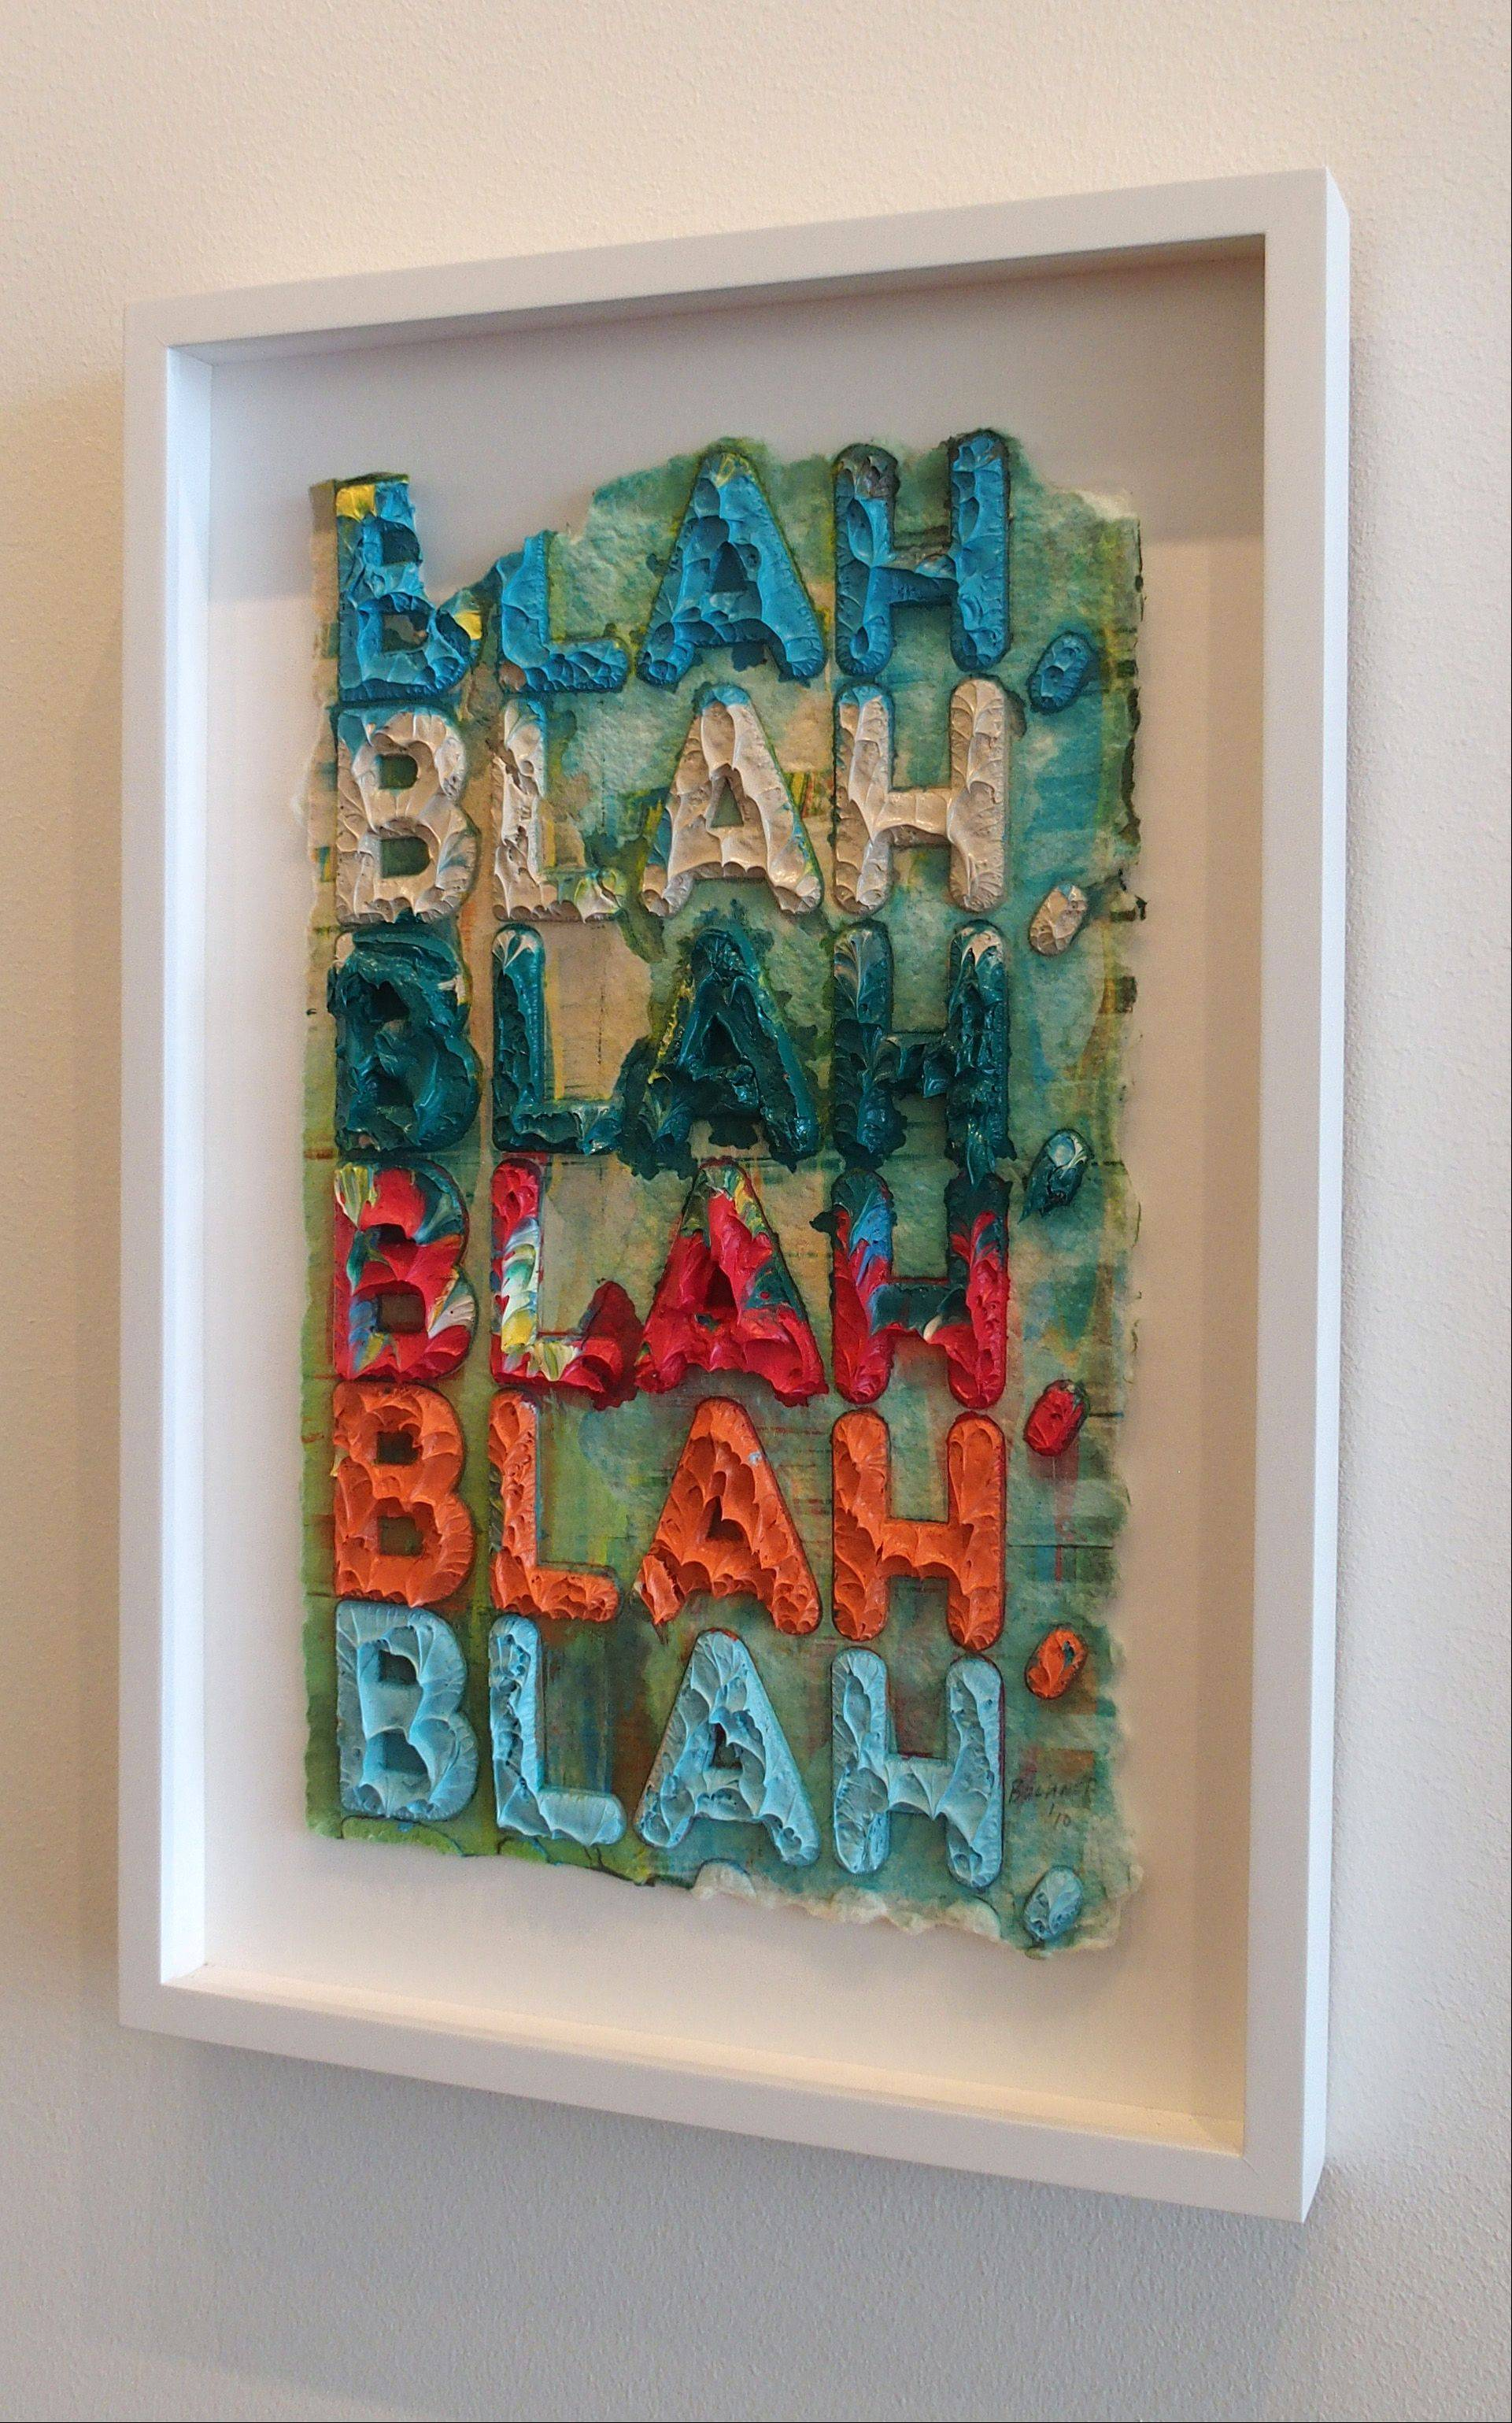 "Mel Bochner's ""Blah, Blah, Blah,"" a monoprint with collage engraving and embossment on twin rocker, is on display at the Cleve Carney Art Gallery."